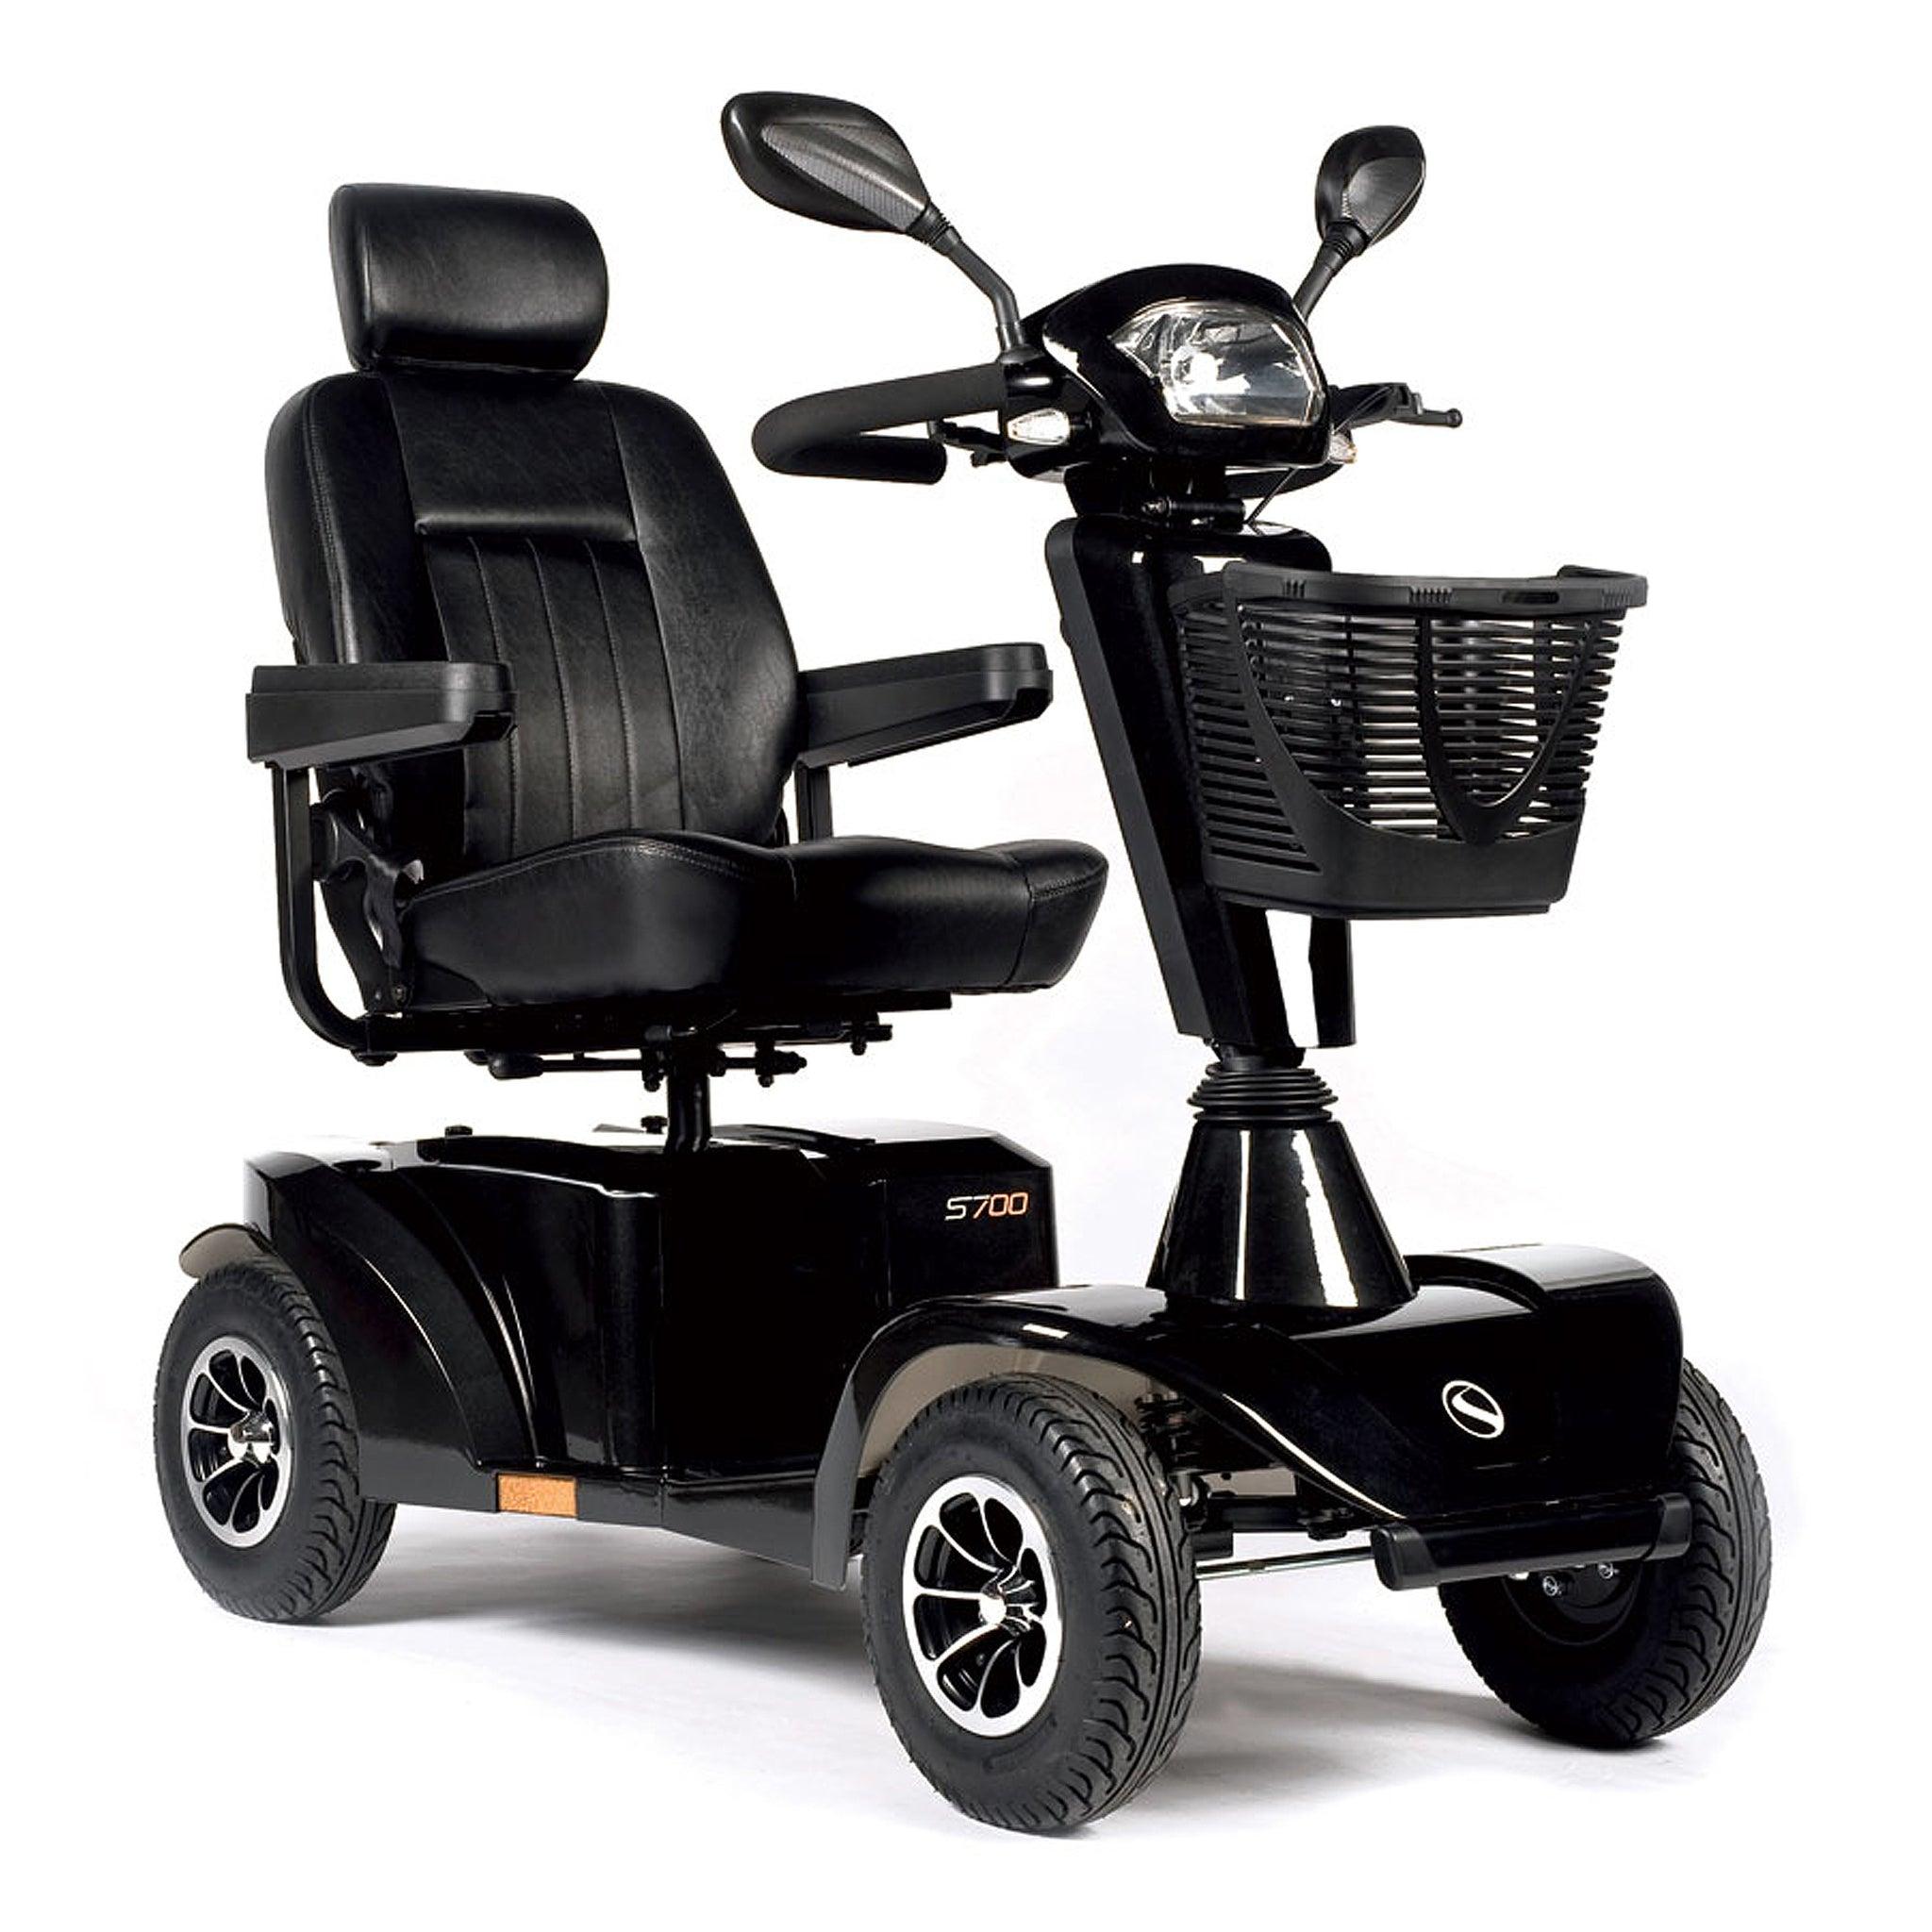 Sterling S700 Road Legal 8mph Long Range Mobility Scooter